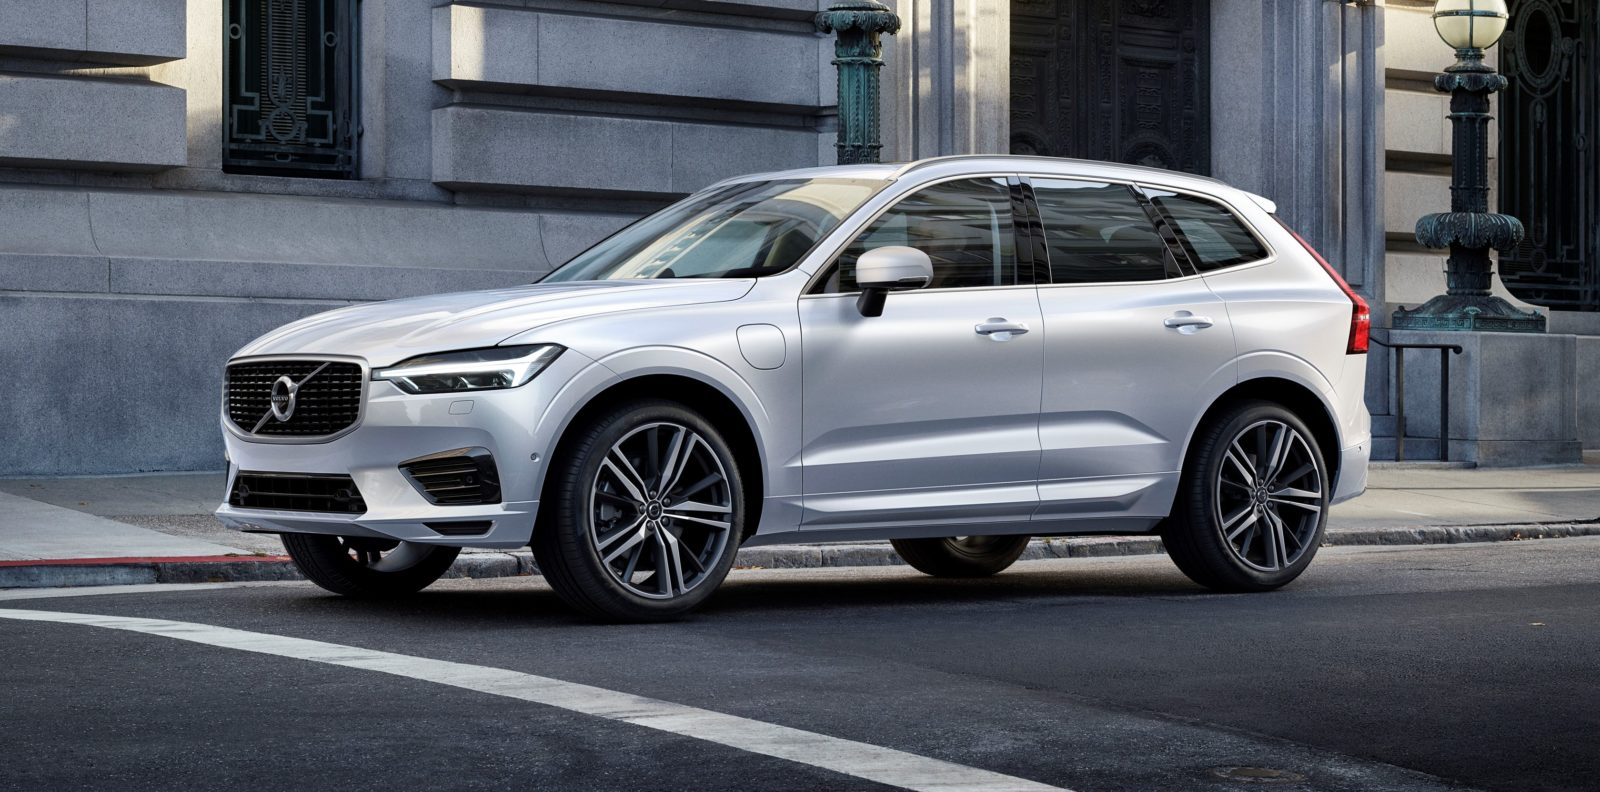 Volvo XC60 D5 R-Design: Sweet Swede chariot